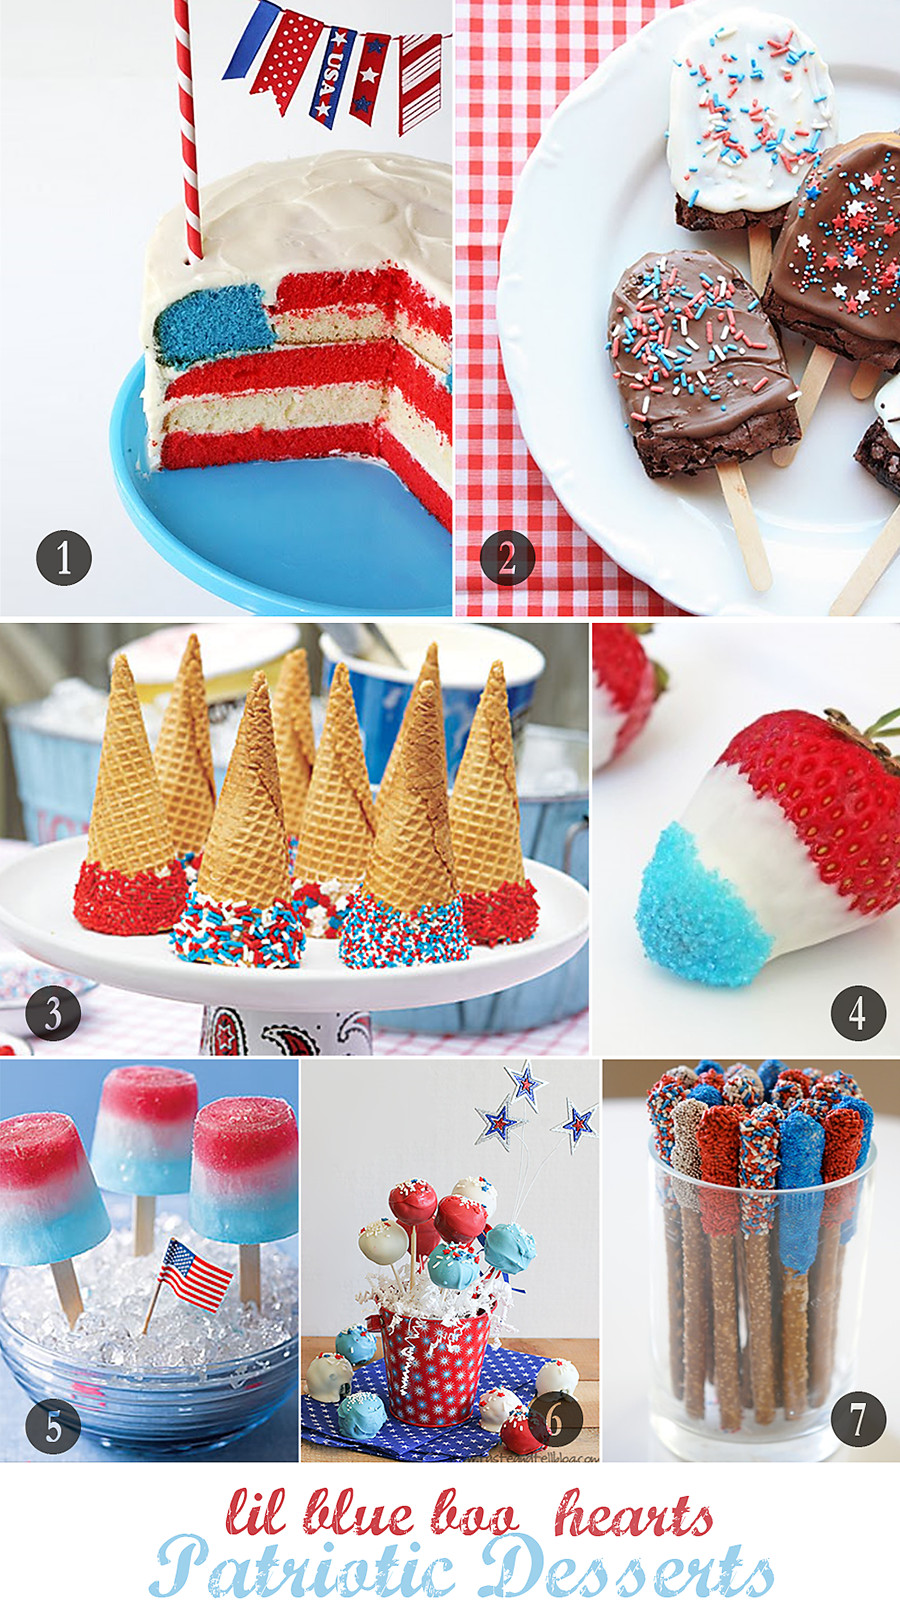 Desserts For 4Th Of July Party  Patriotic Dessert Ideas